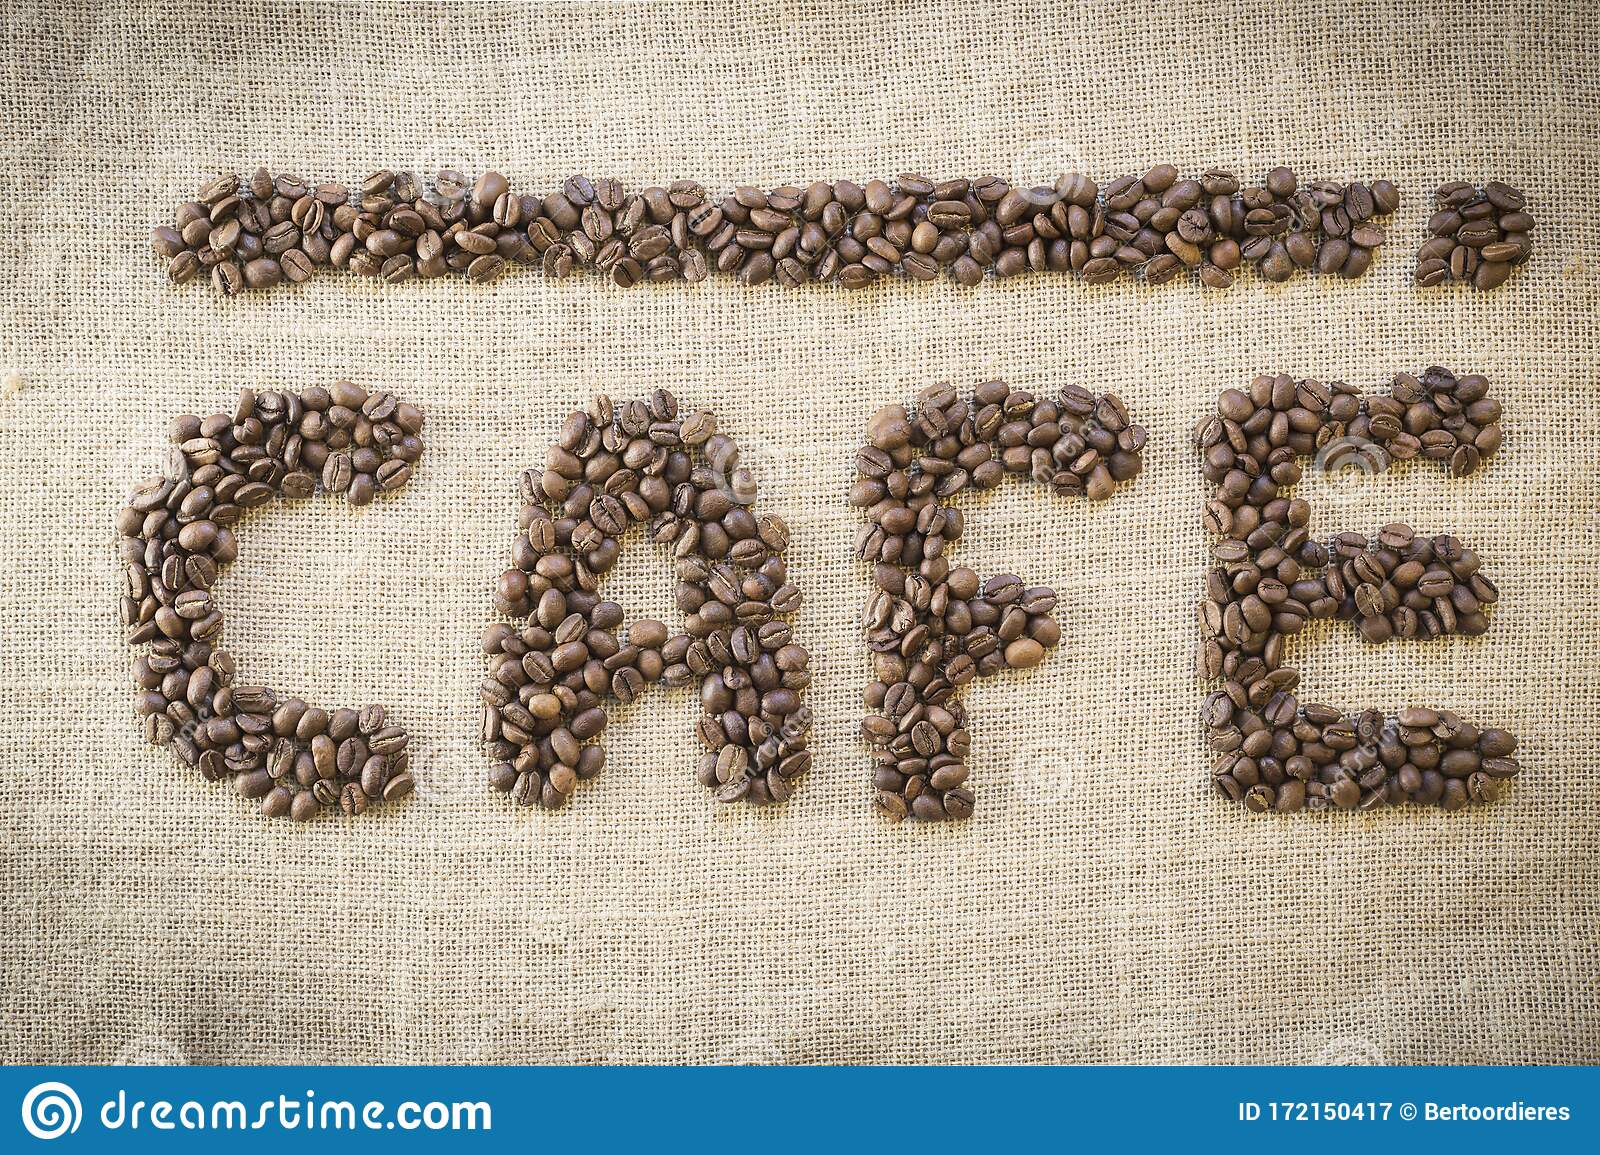 Name Cafe Made from Coffee Beans Stock Image   Image of coffee ...